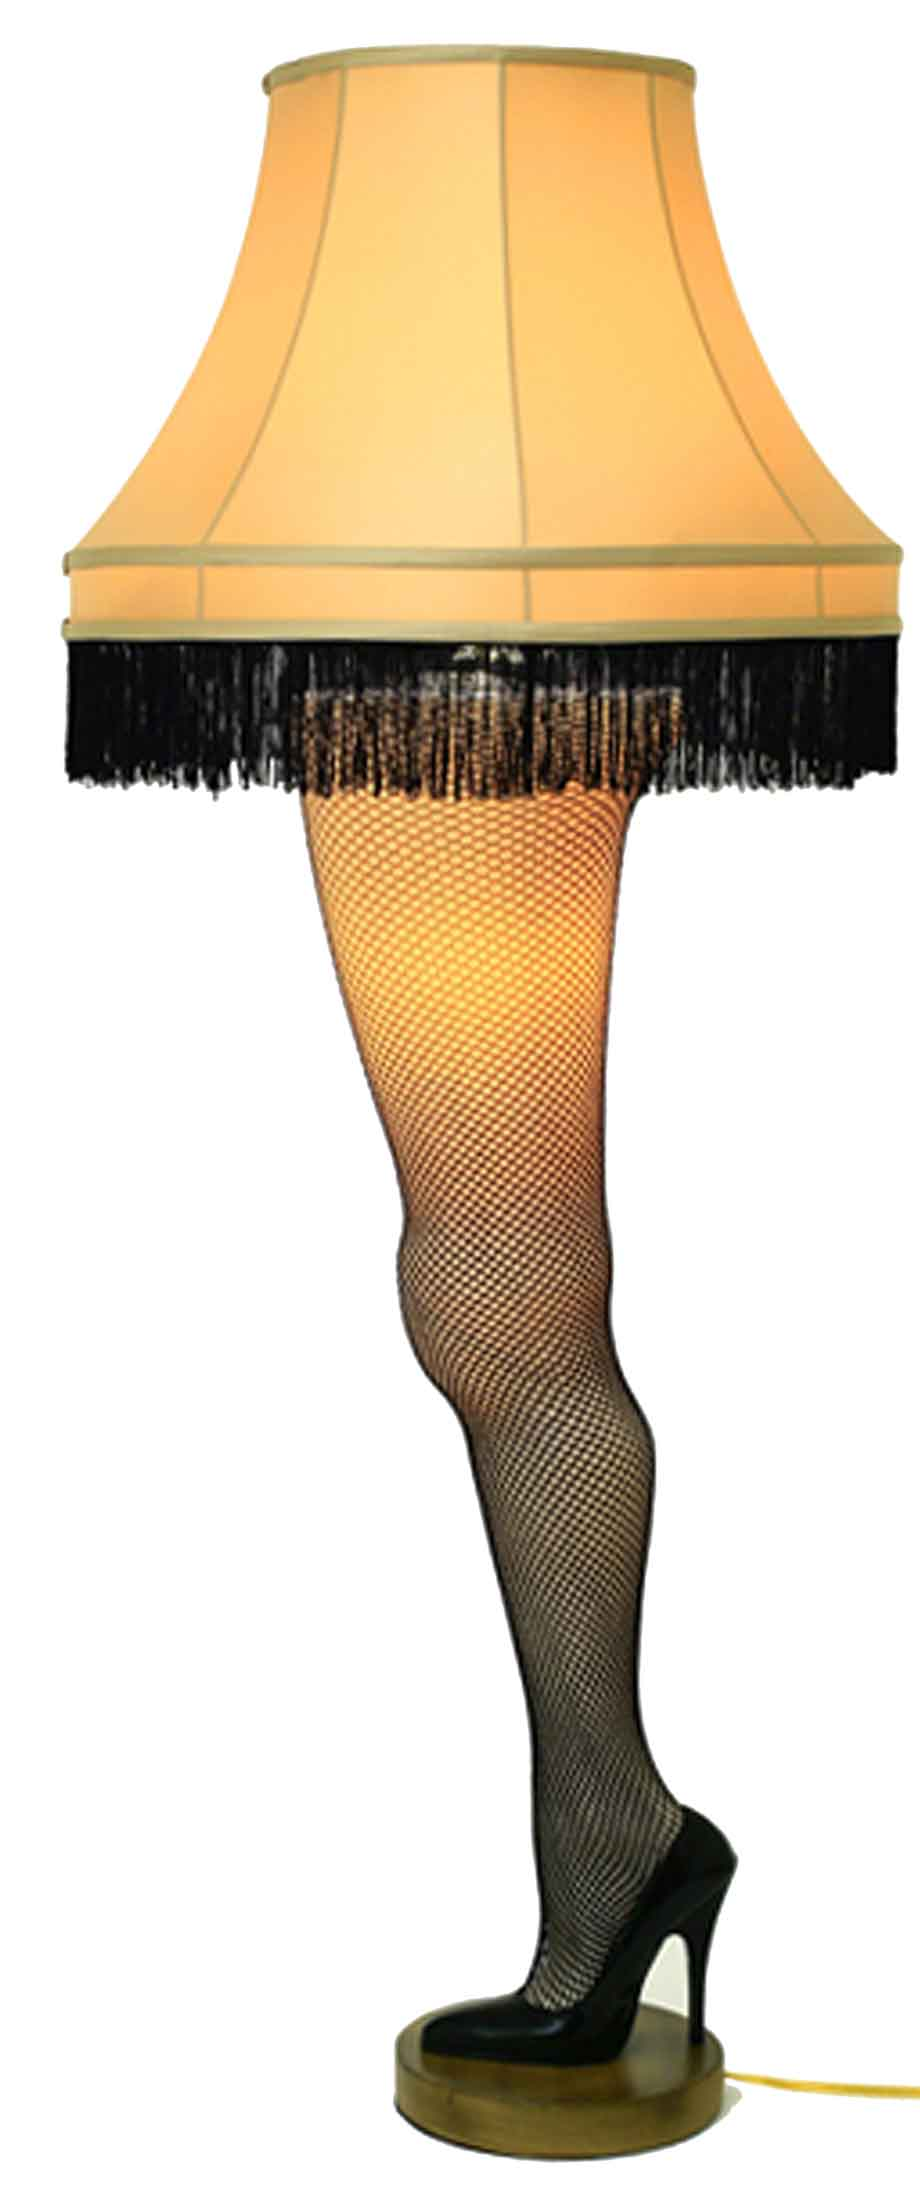 Christmas movie leg lamp.